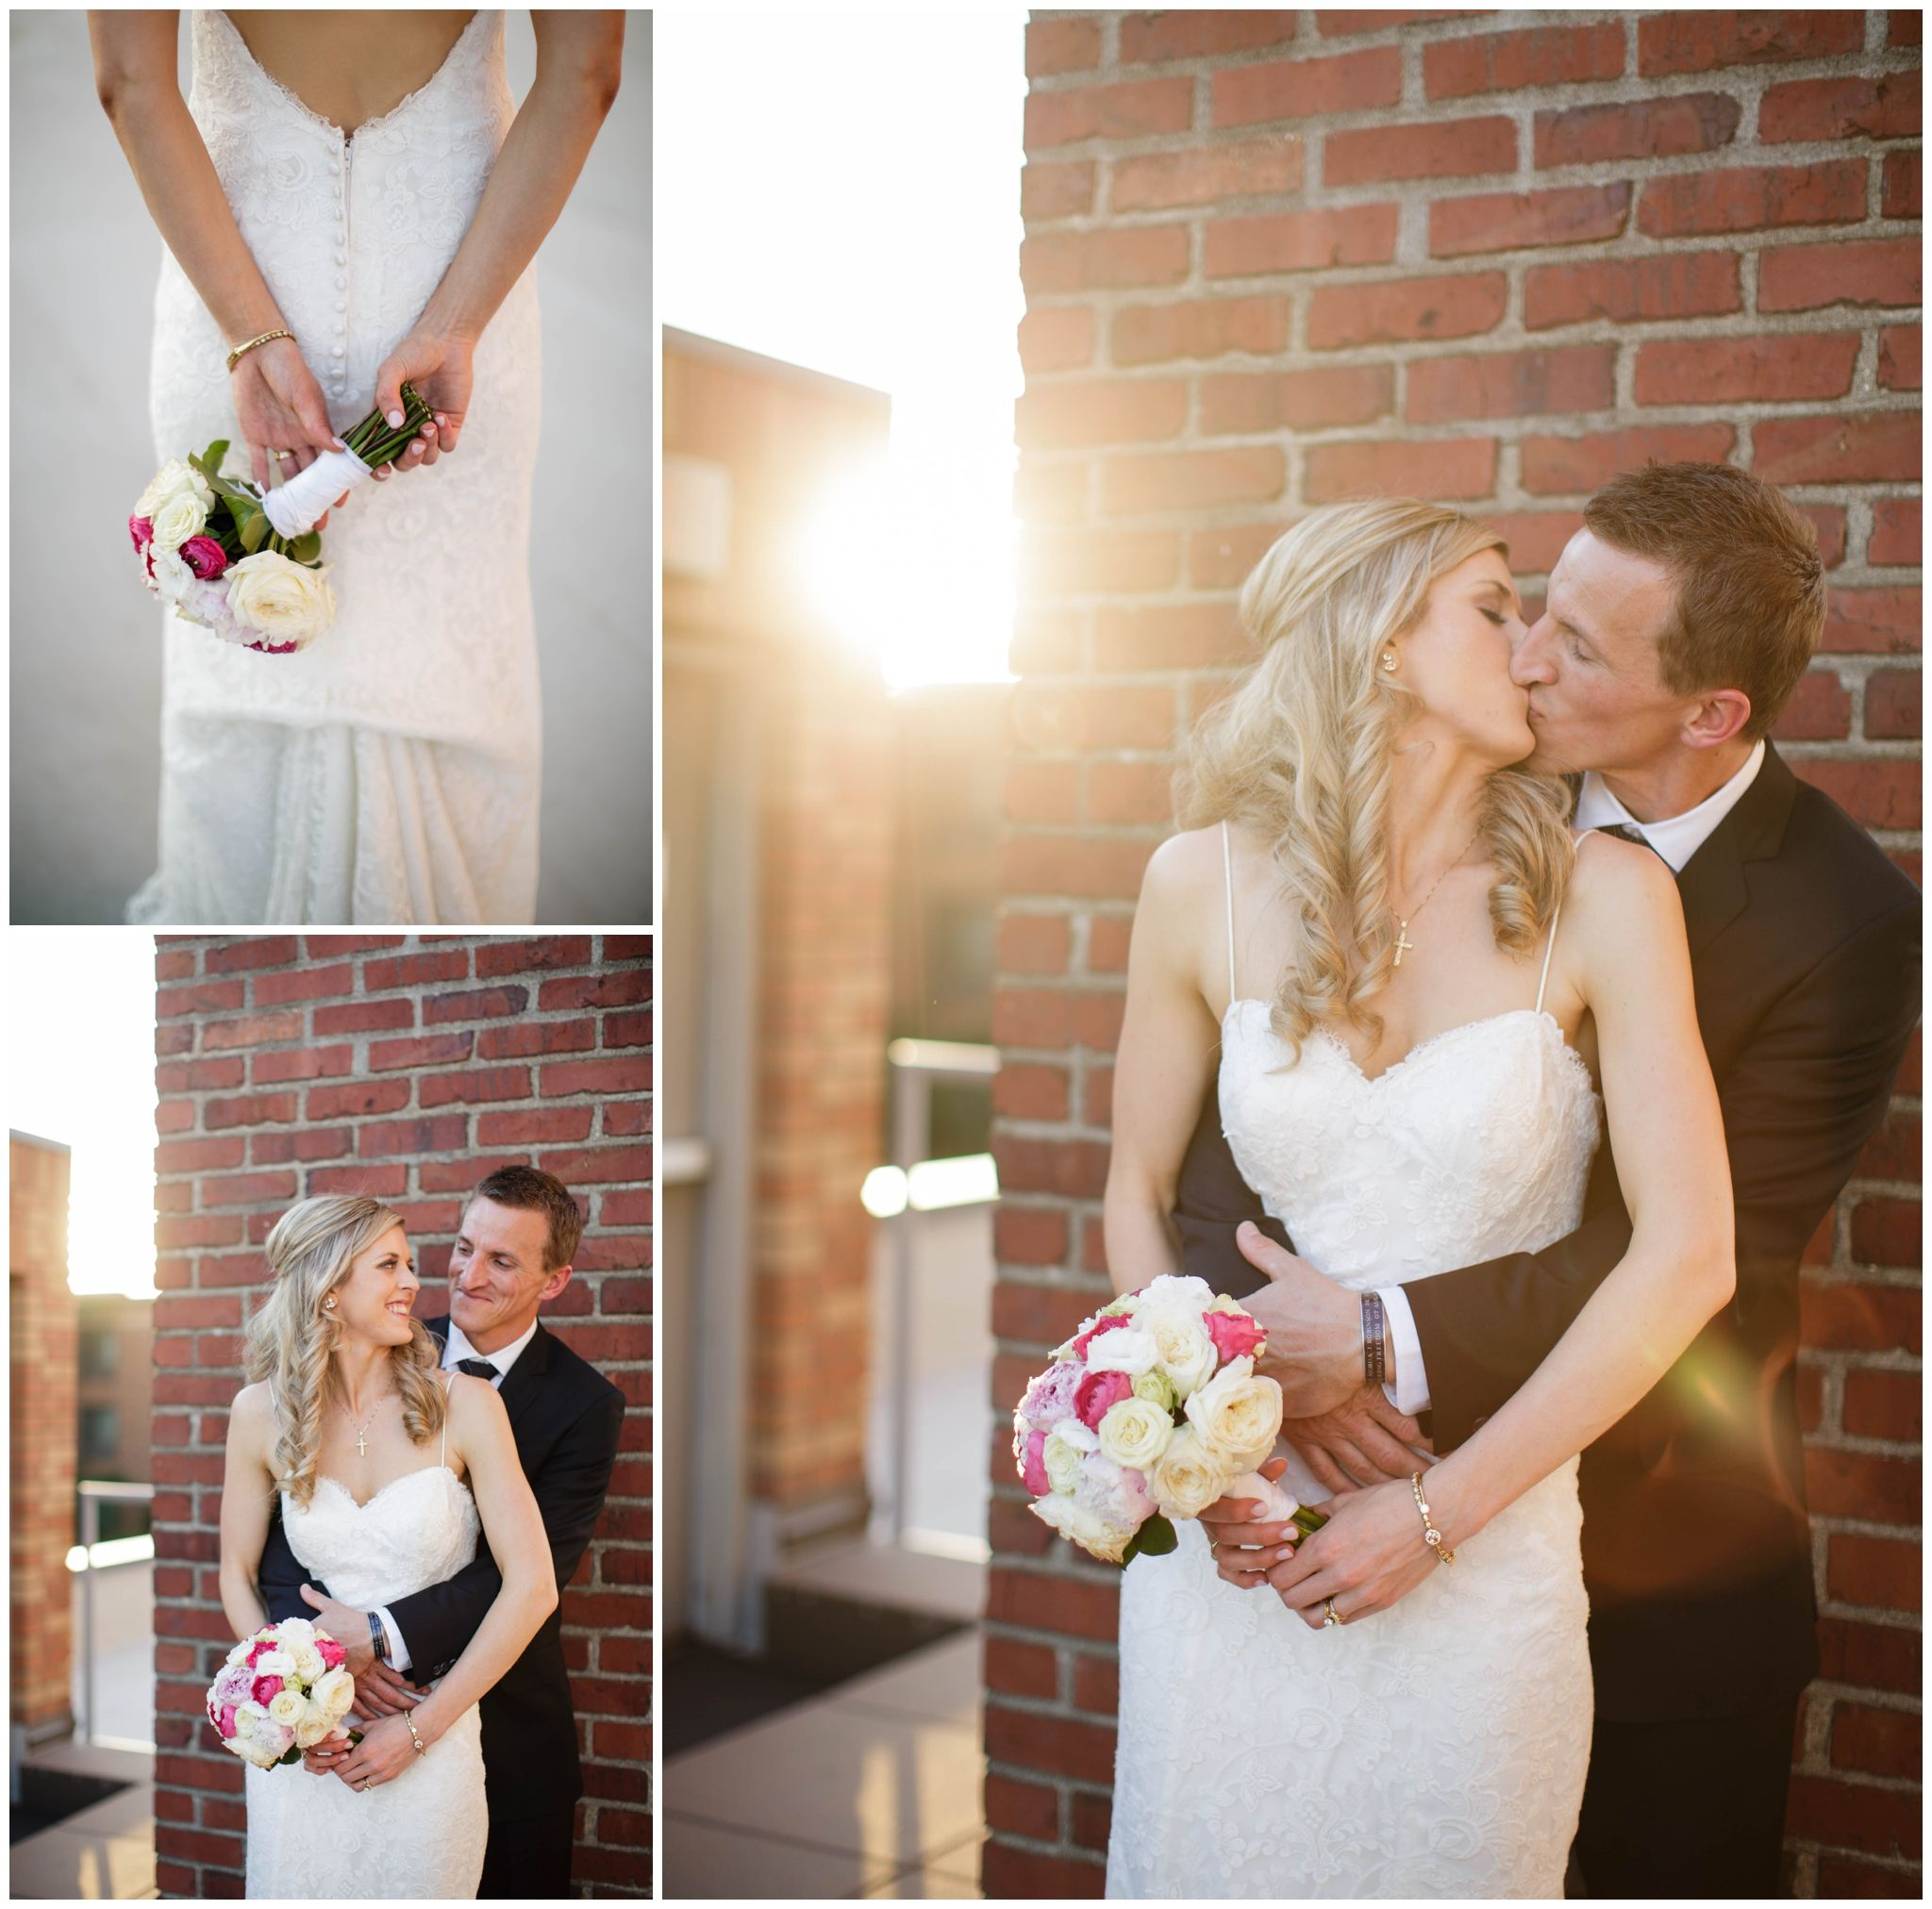 Alex And Neals Walla Wedding Photography At Marcus Whitman Hotel By Gigi Hickman